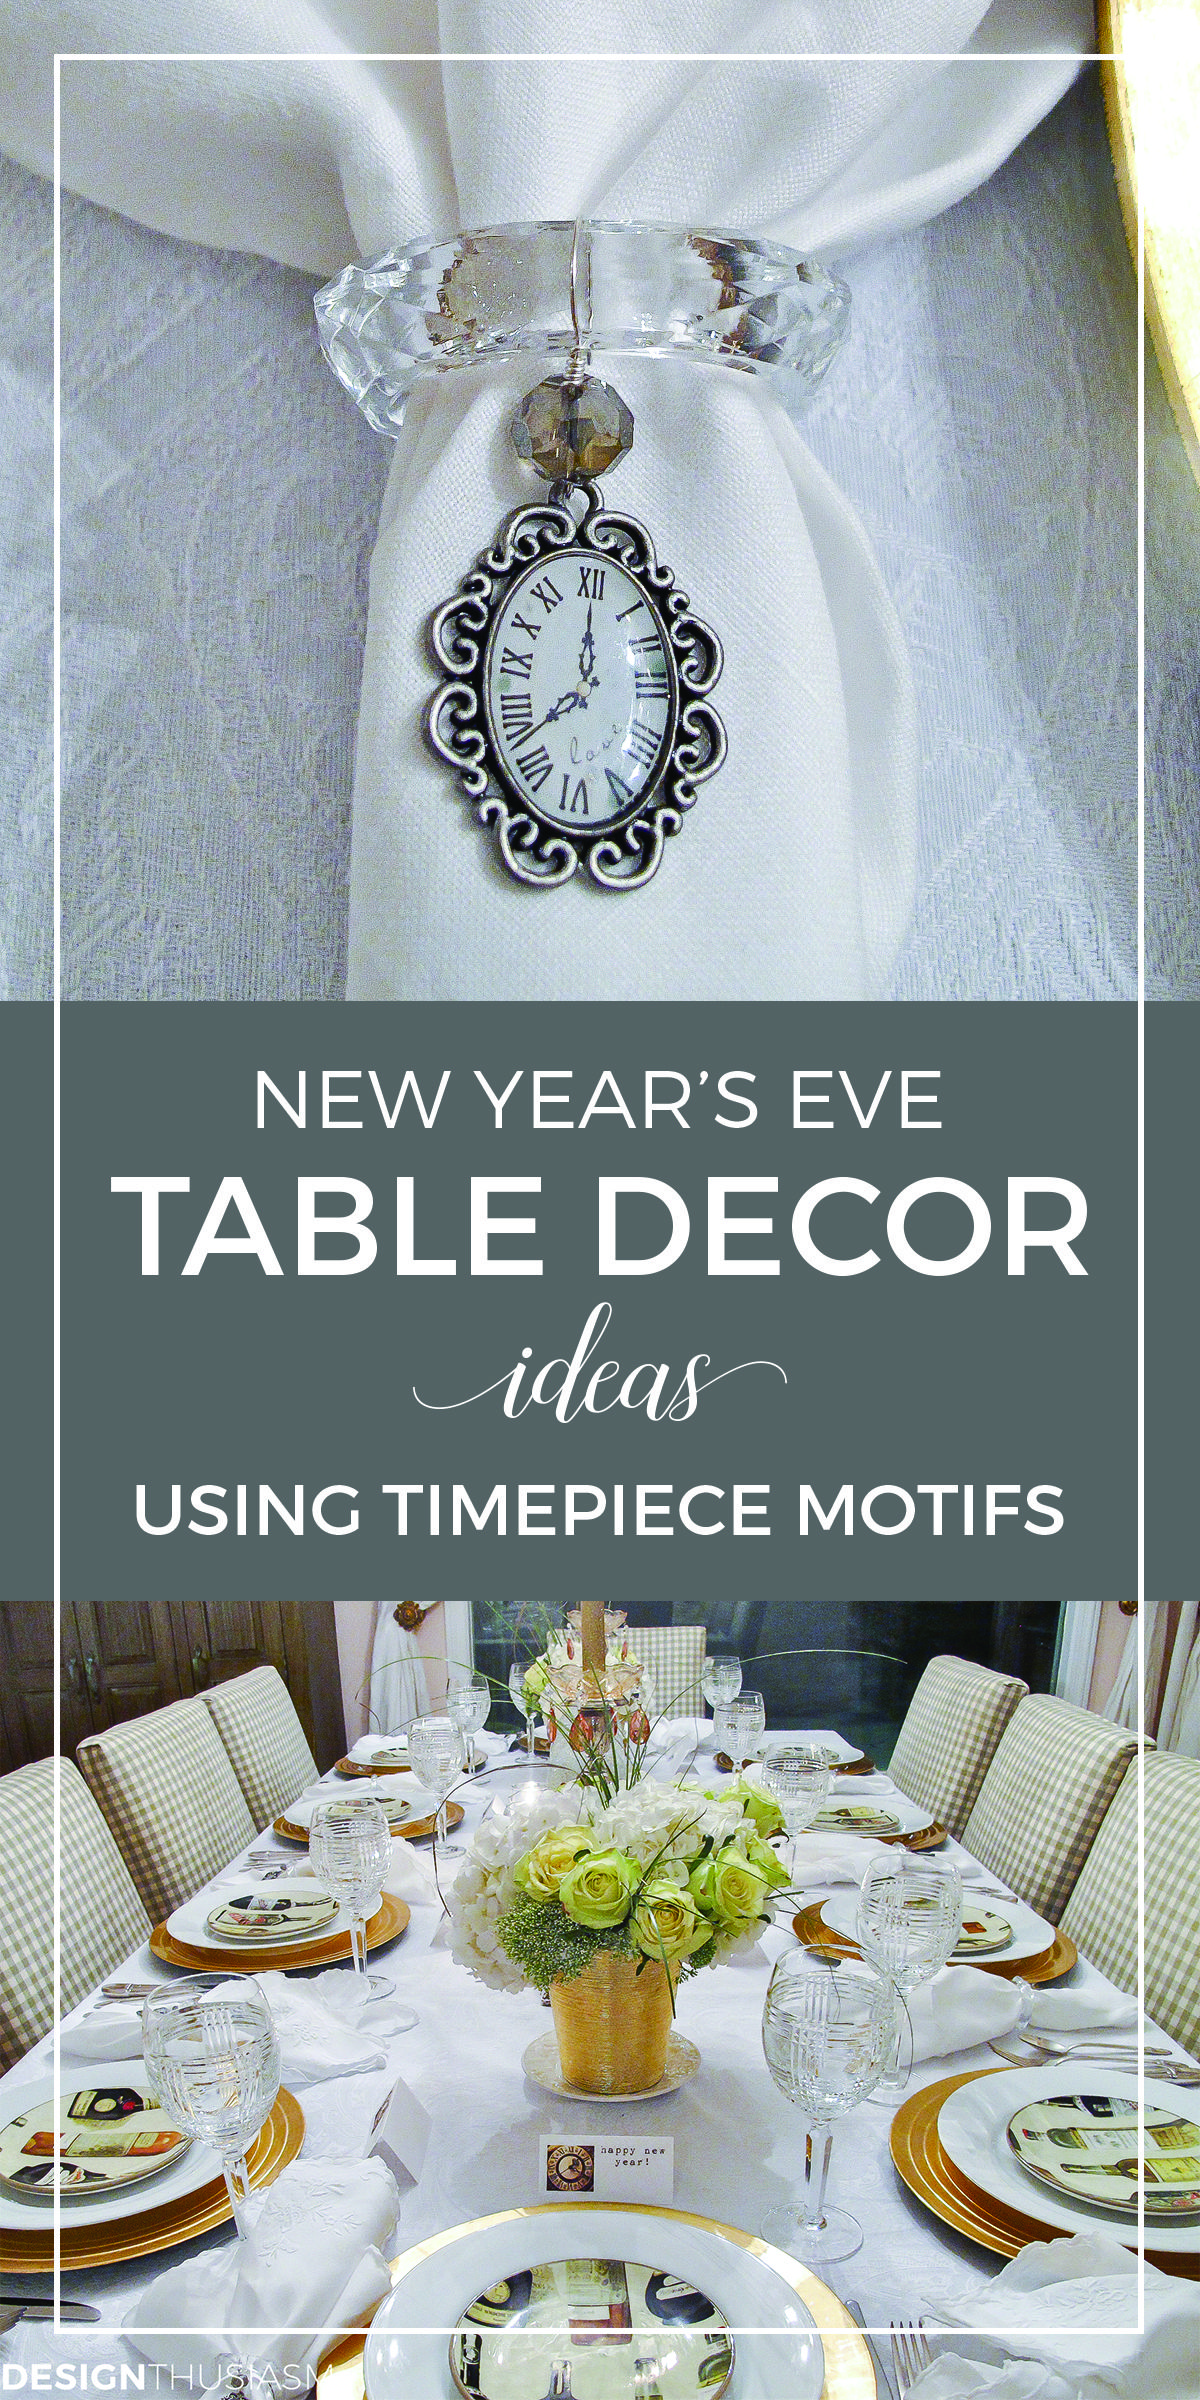 new years eve table decor ideas for your home party new years eve party themes new years tablescape using clocks new years table setting with